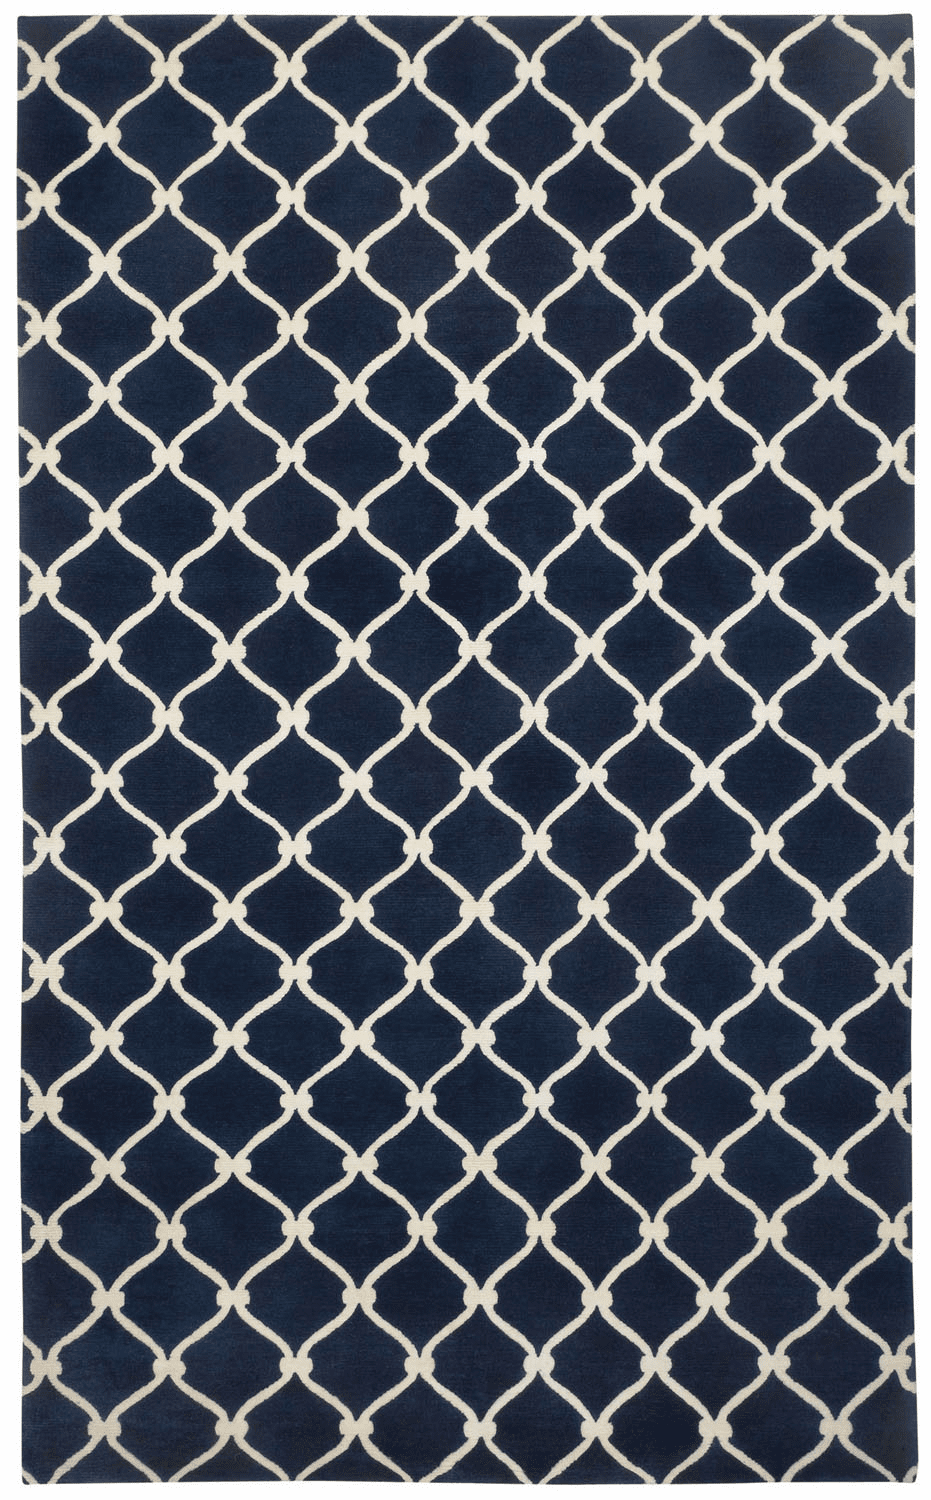 Hand Knotted Dark Blue Cream Rug